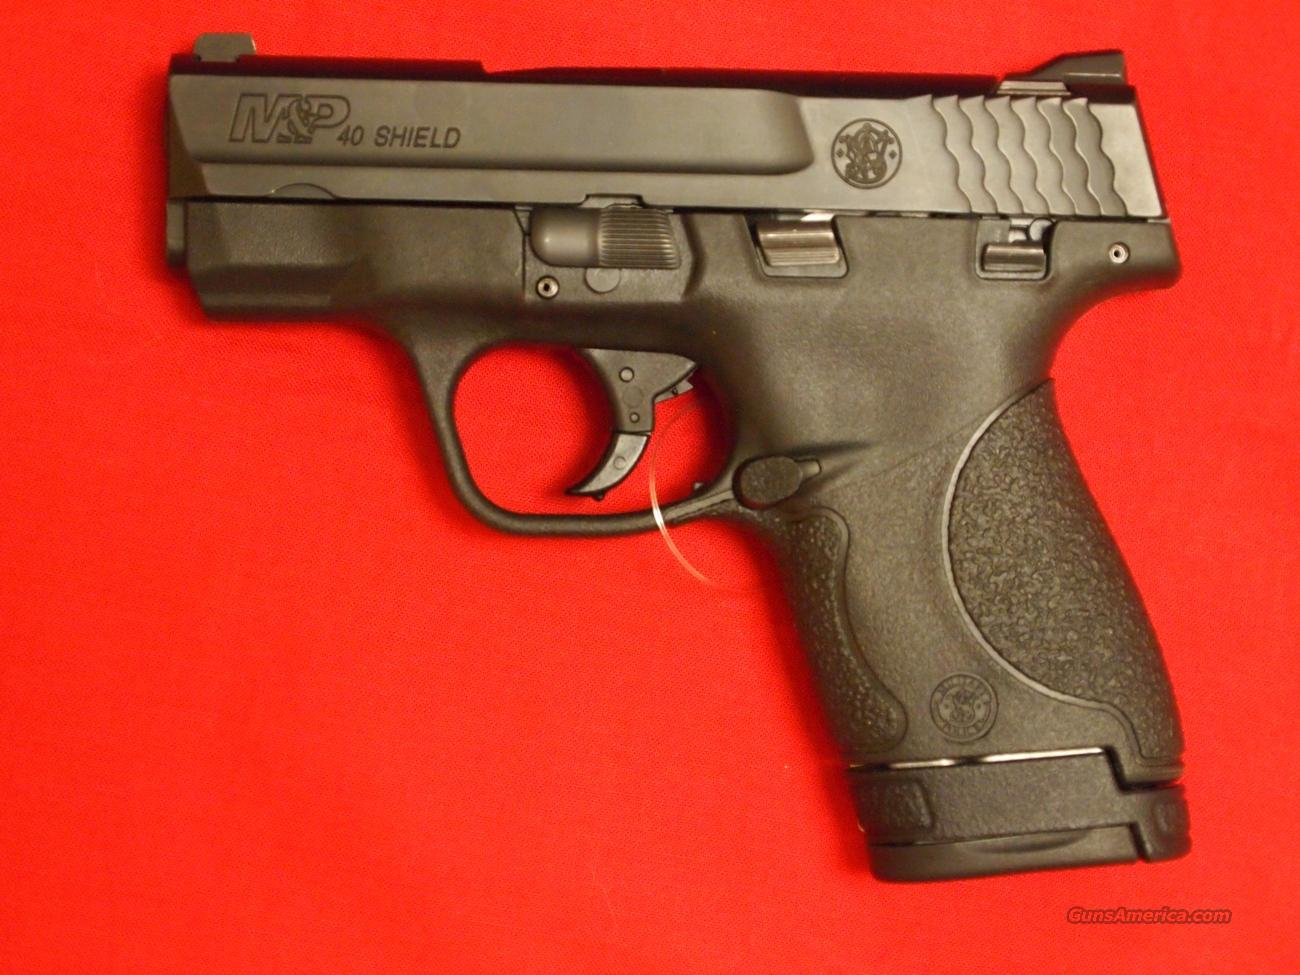 Smith and Wesson M&P40 Shield .40 S&W  Guns > Pistols > Smith & Wesson Pistols - Autos > Shield